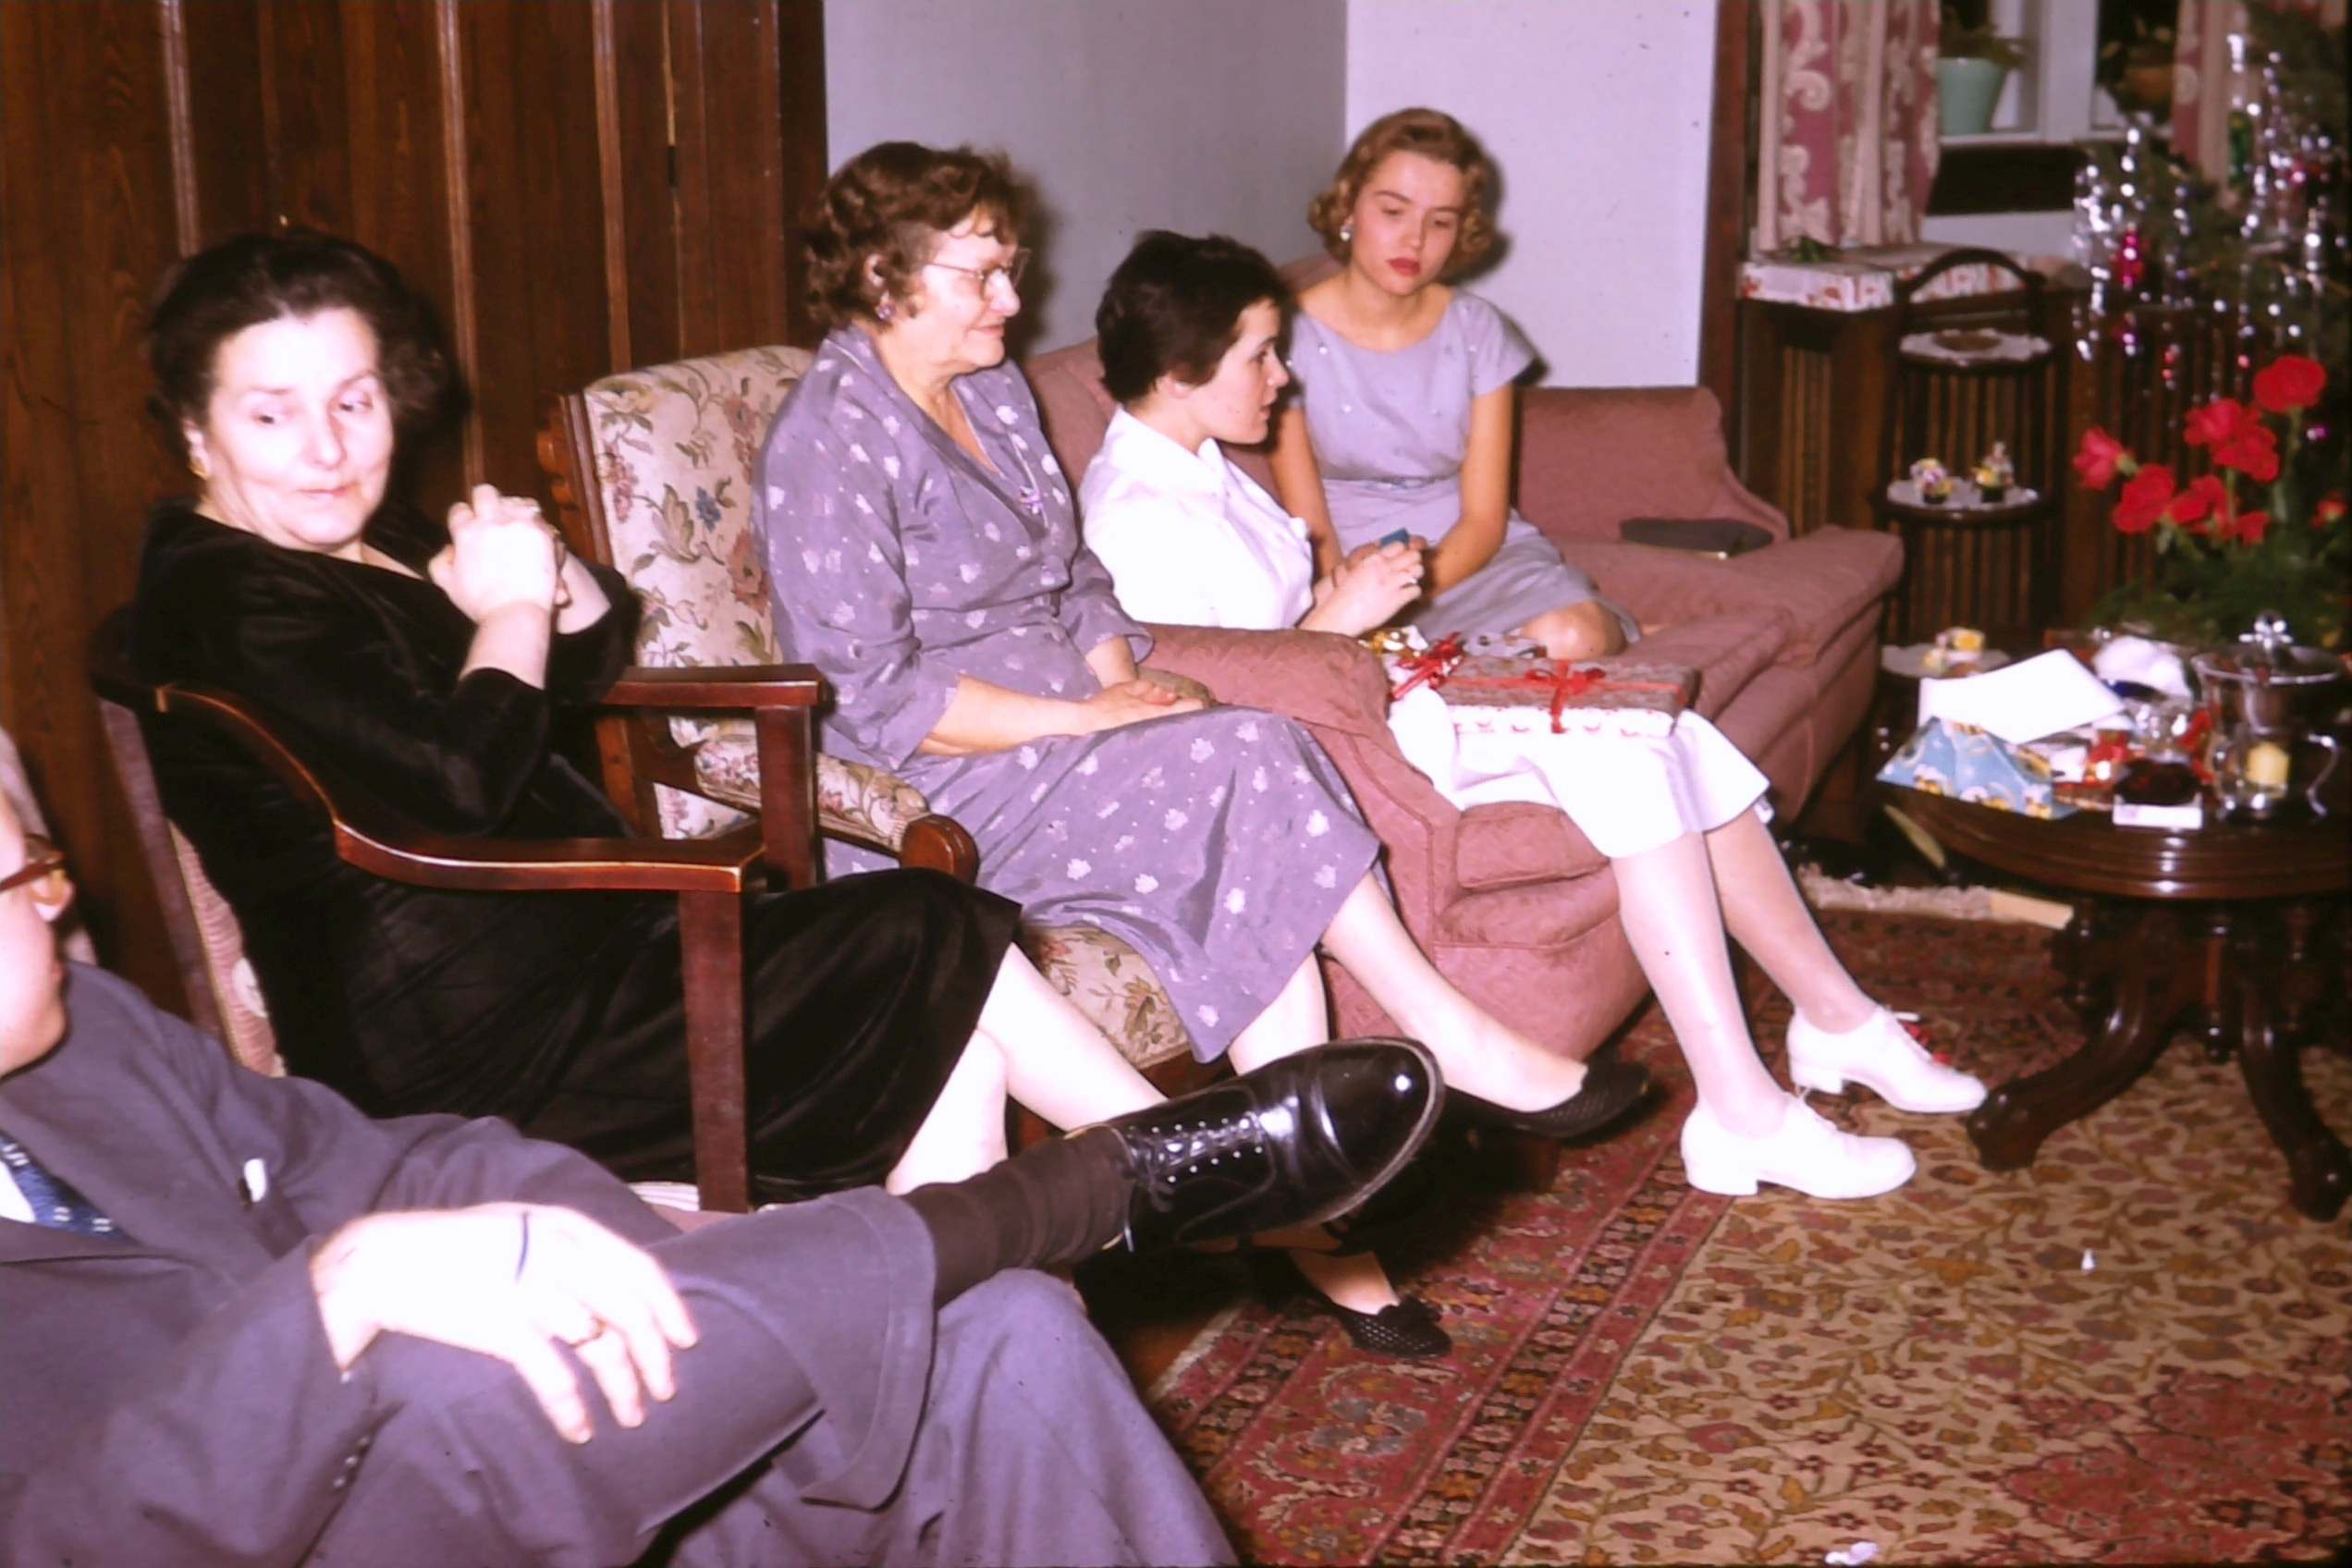 Christmas in 1957 4 women